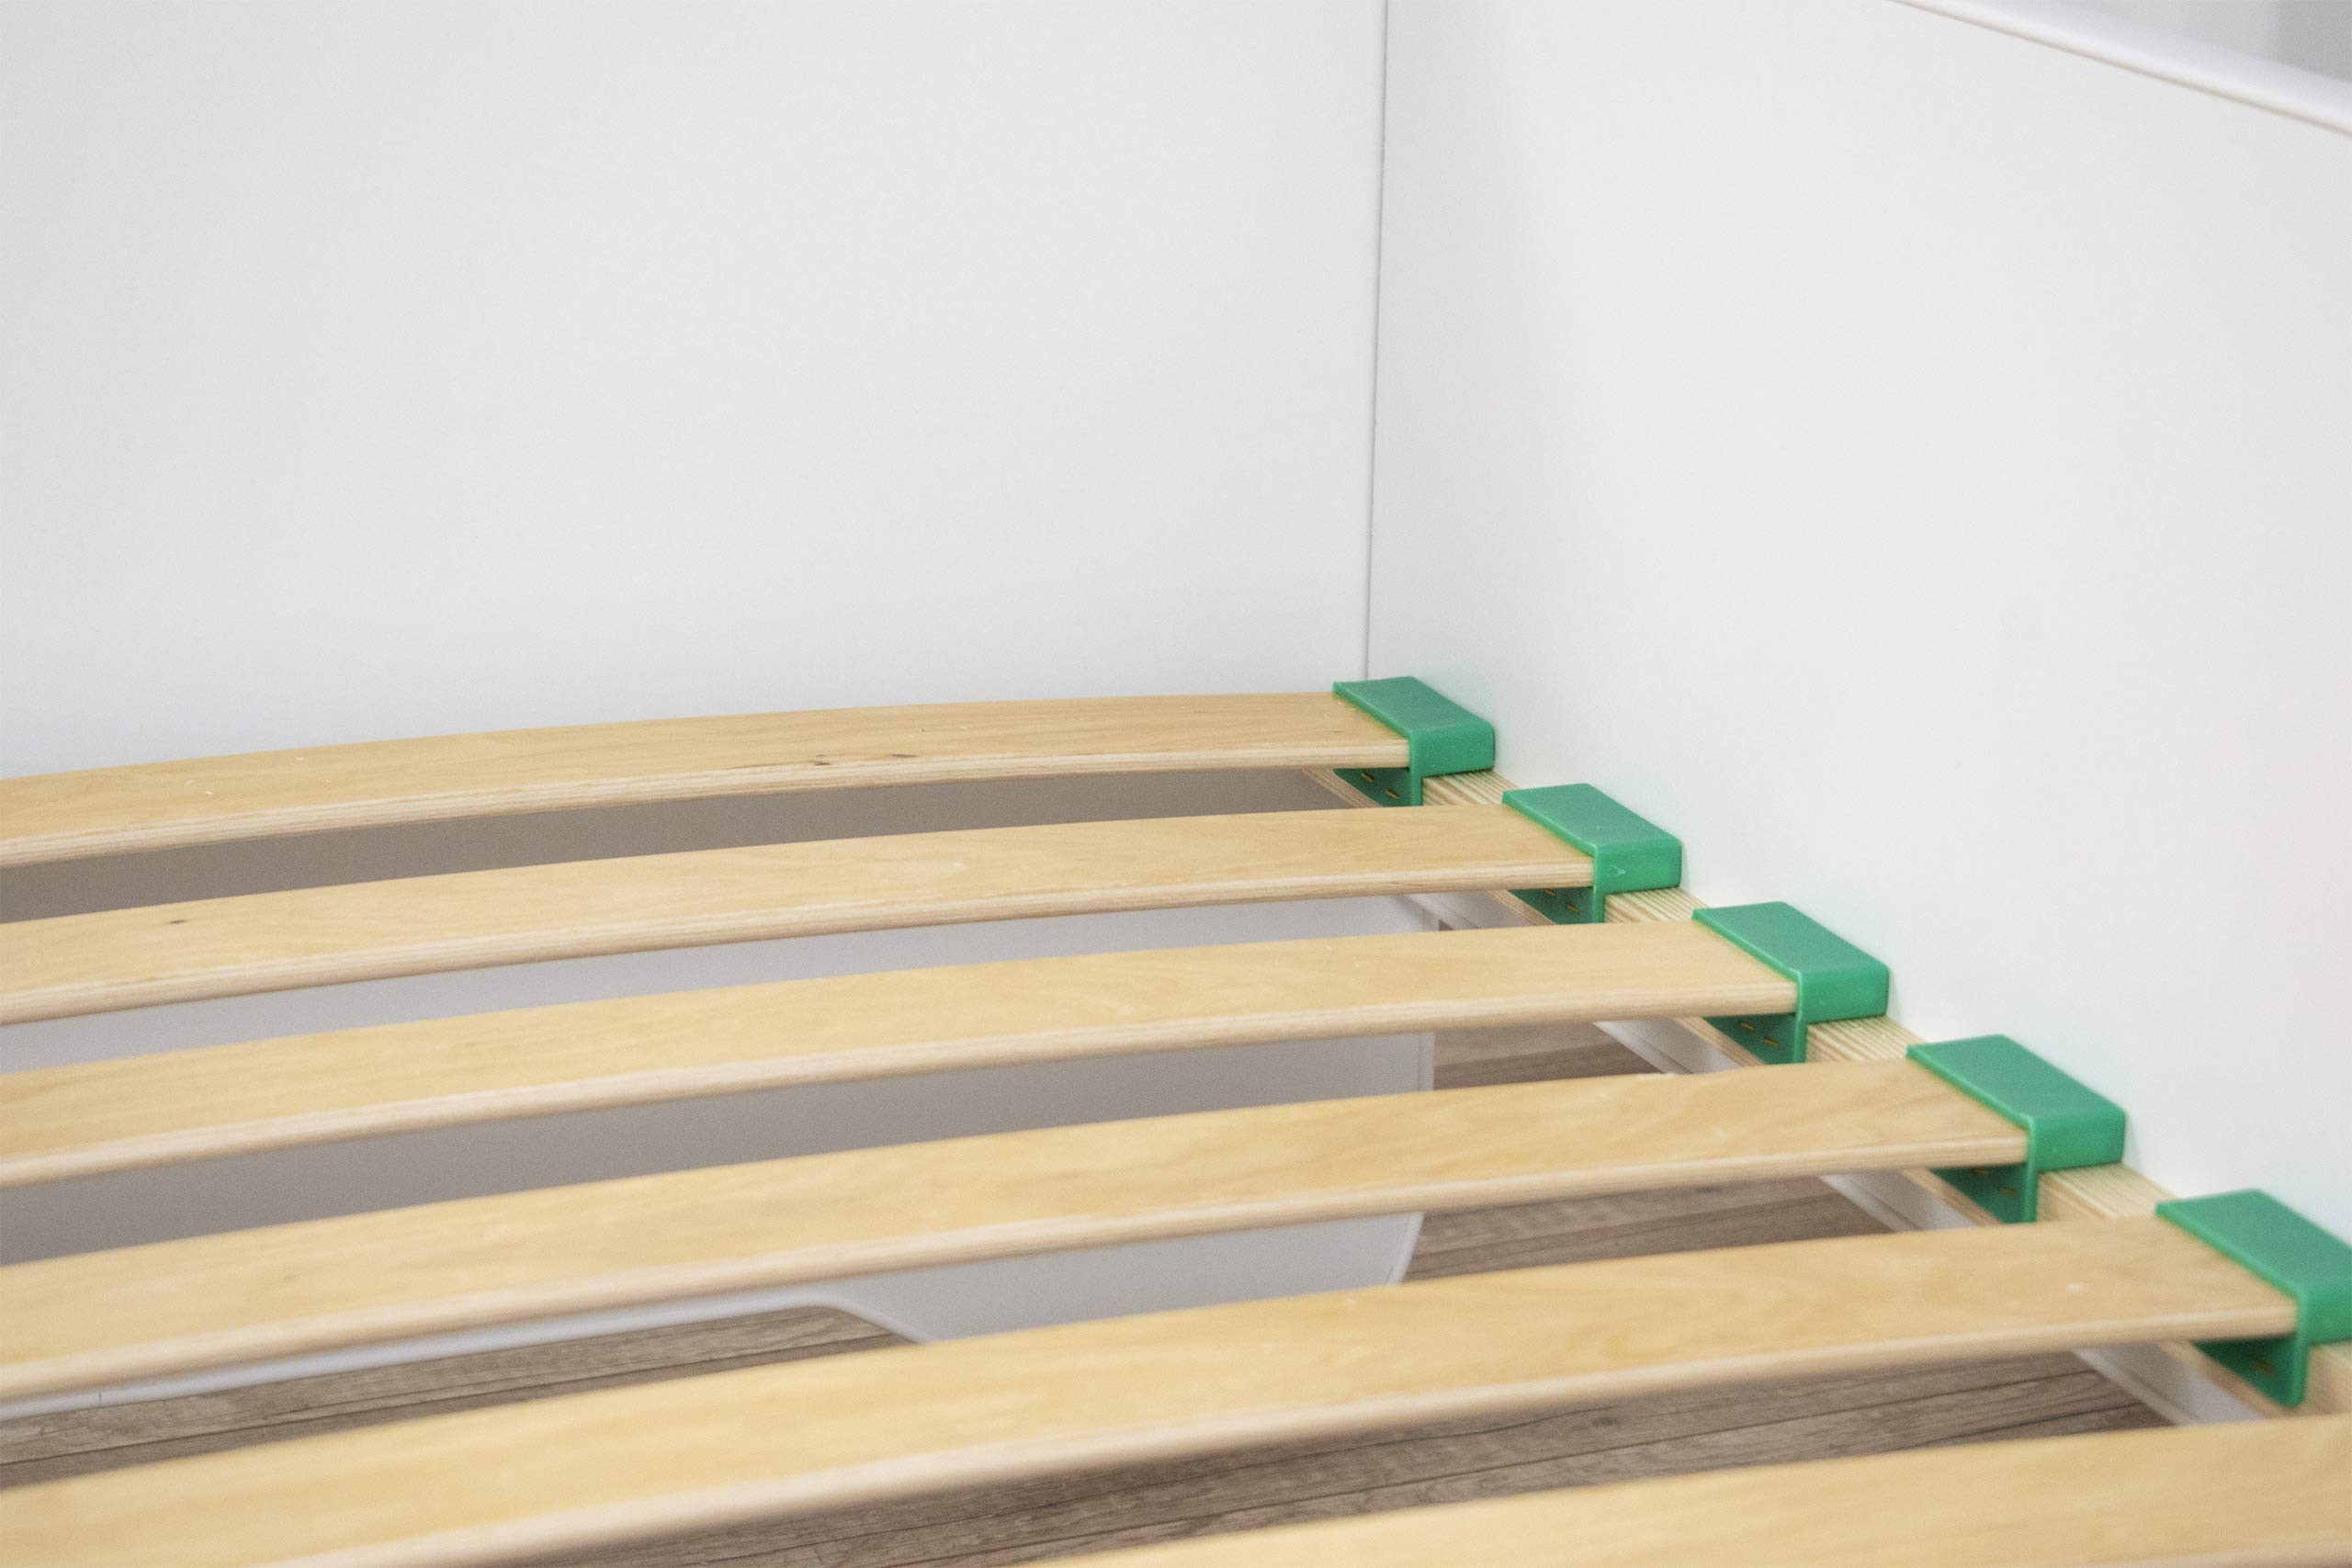 """Toddler Children Kids Bed *Including Mattress* CAR F1 140 x 70 (Race) Topbeds TODDLER BED - perfect transition from cot to the first """"big"""" bed HIGH QUALITY - made in EU. Quality controlled at each stage of production. Made out of high quality MDF which makes bed sturdy and lightweight at the same time. Wooden sprung slats included. SAFETY - low from the ground construction makes it easy for kids to climb in and out. Edges covered with soft PCV. Higher sides of the bed protect your kid from falling off. Furniture board finished with a non-toxic coating. Holds up to 150 kg. 6"""